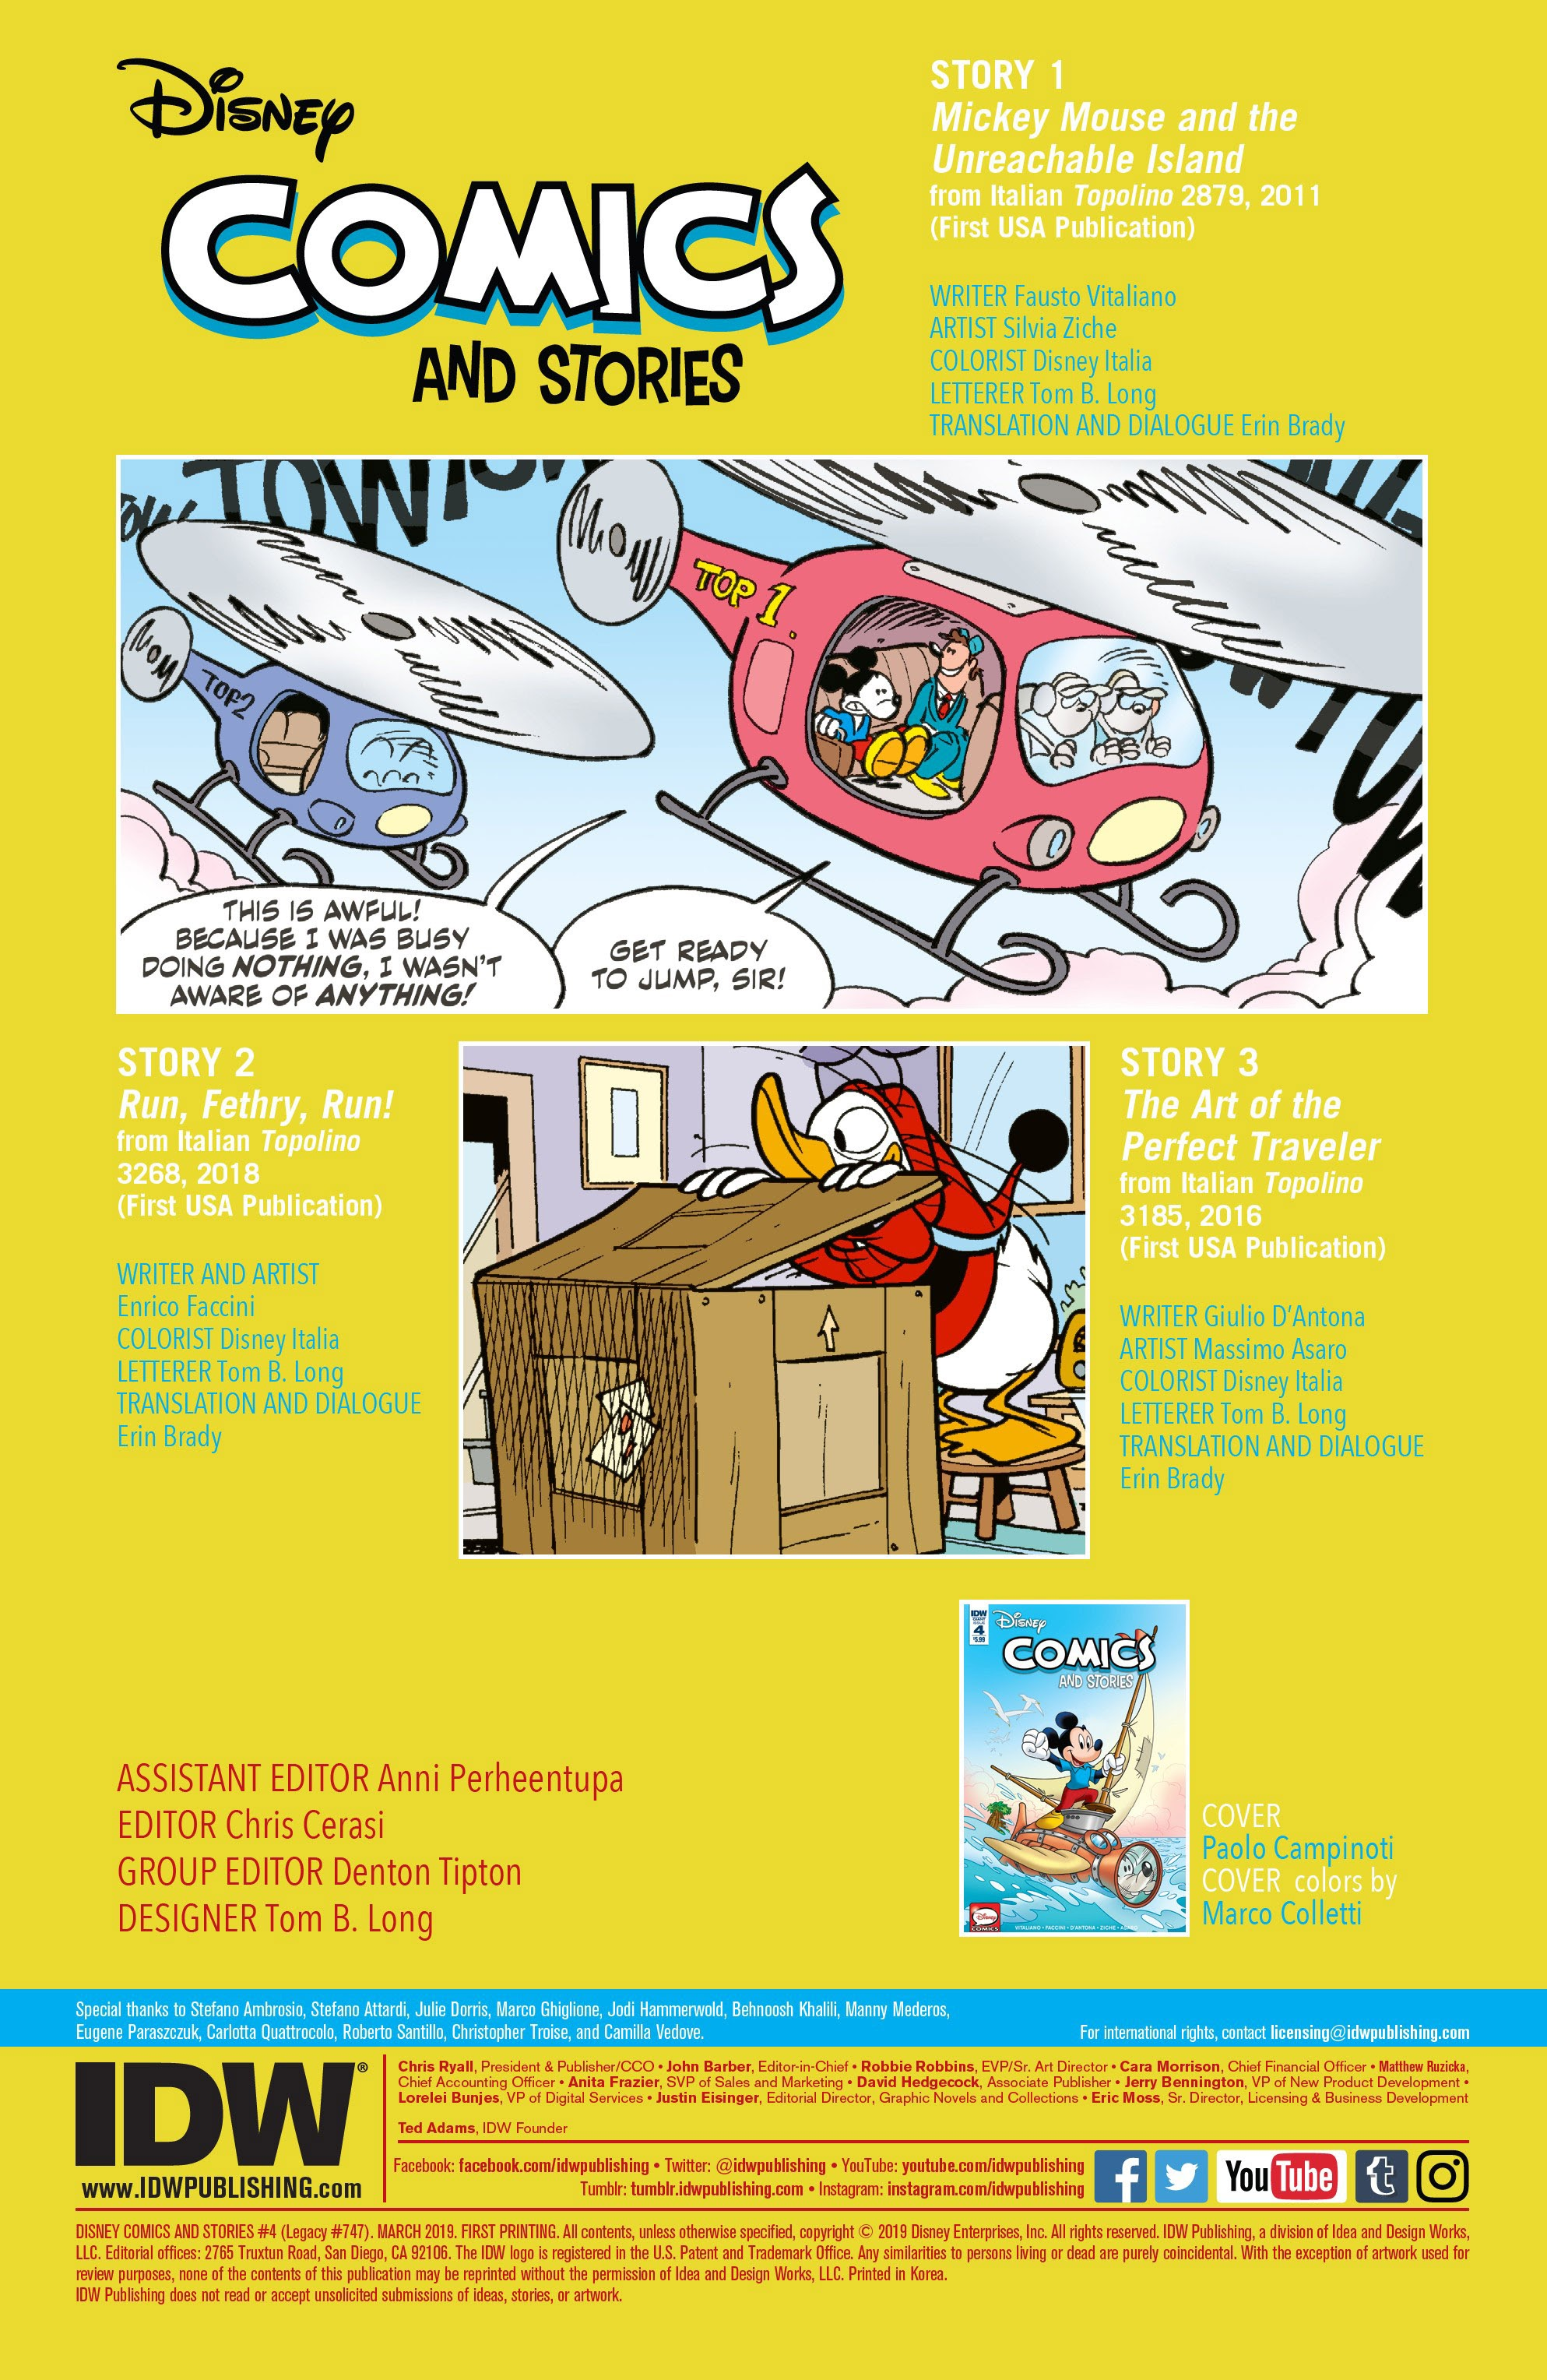 Disney Comics and Stories 4 Page 2